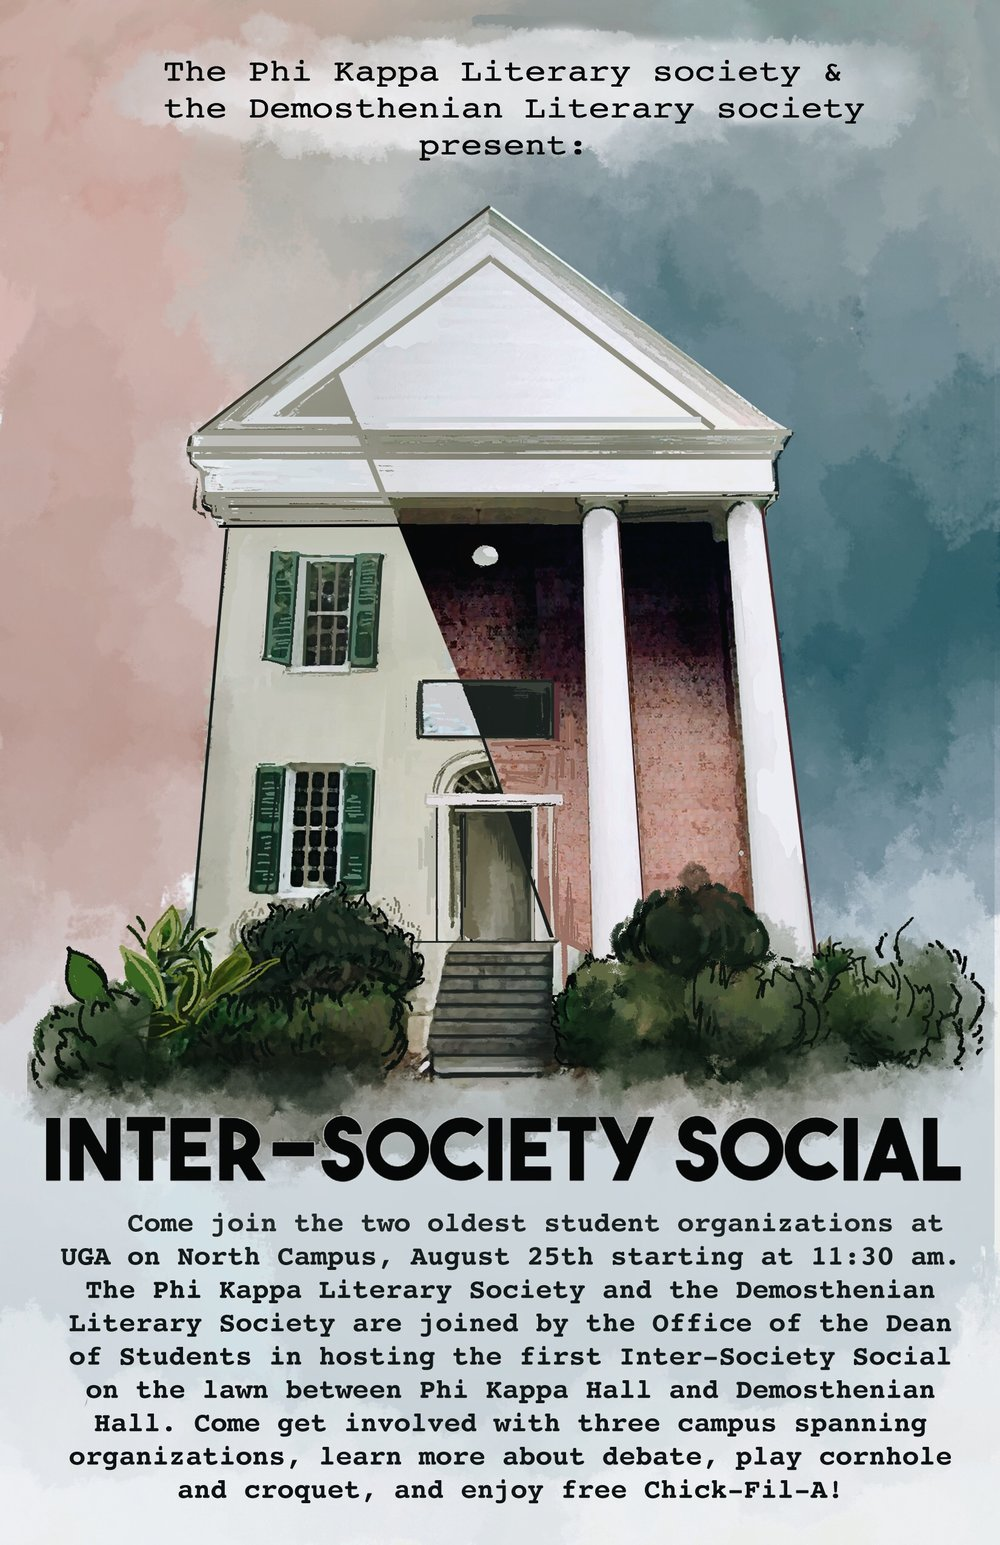 8.25.18 - join the Phi Kappa & Demosthenian Societies on the North Campus Quad for the first annual Intersociety Social!